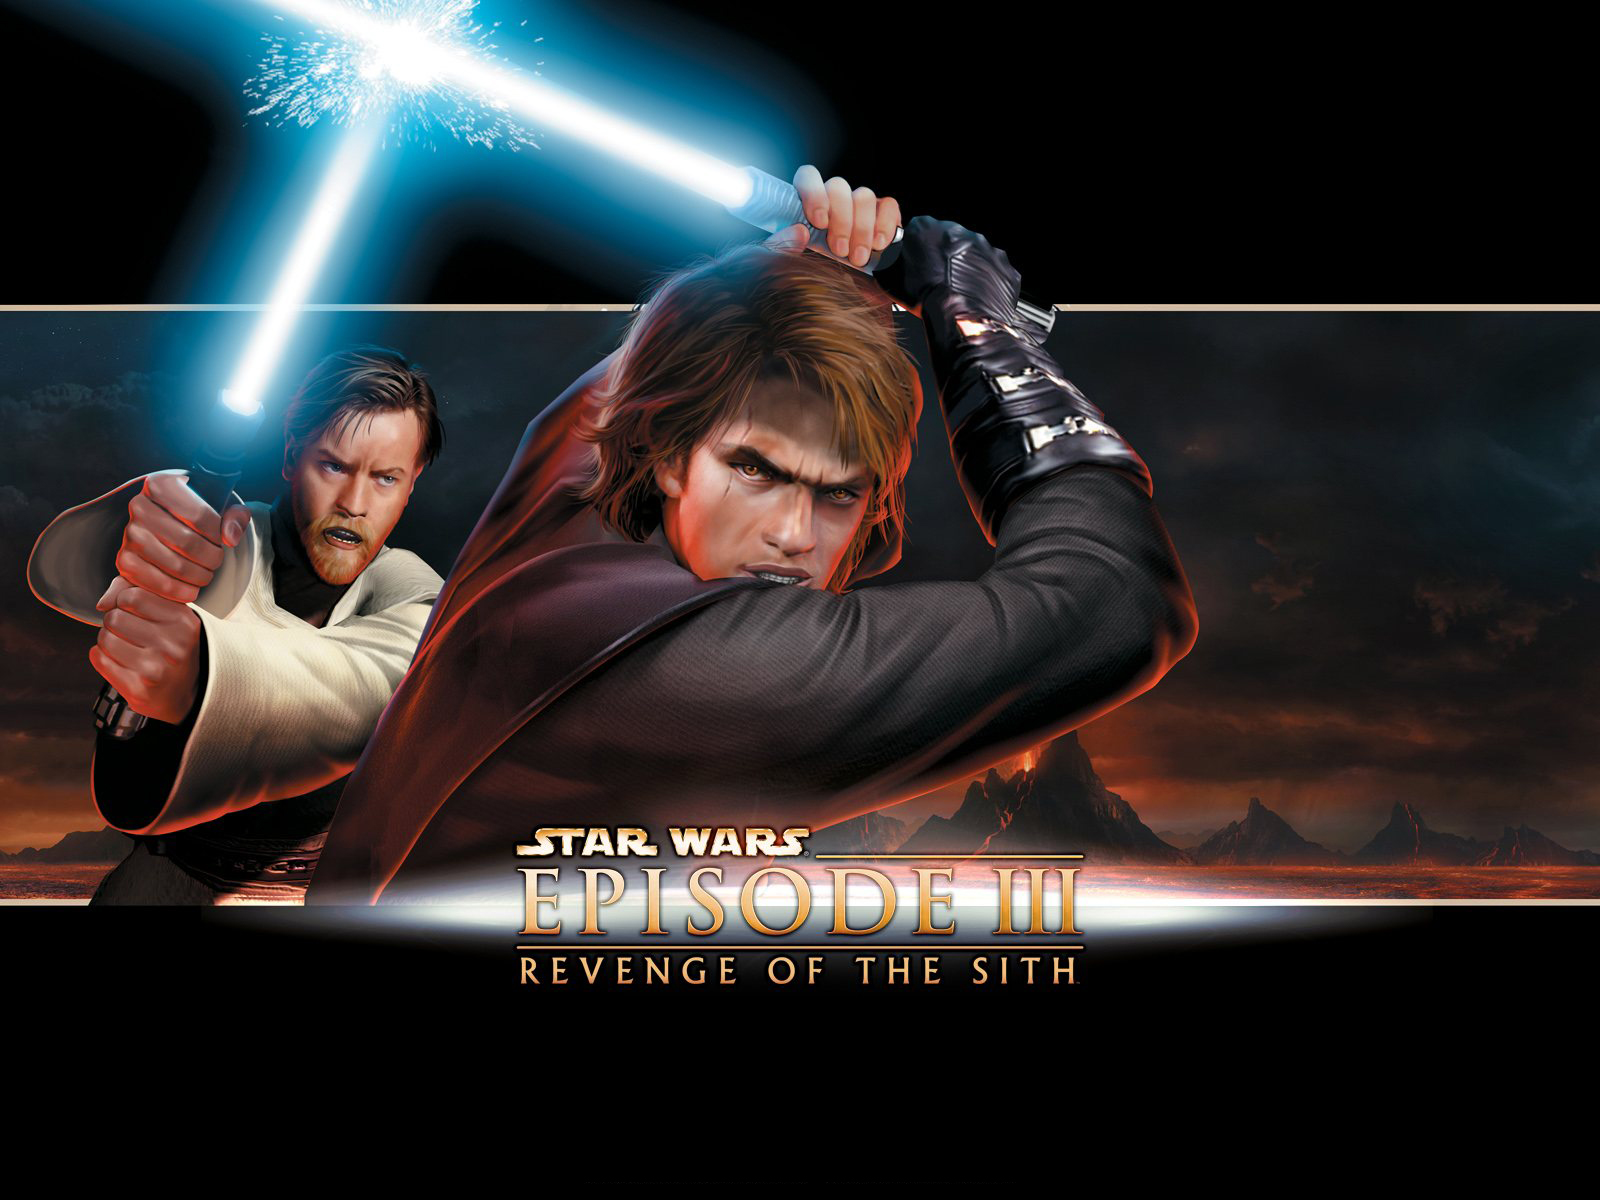 Star Wars Episode Iii Revenge Of The Sith Details Launchbox Games Database